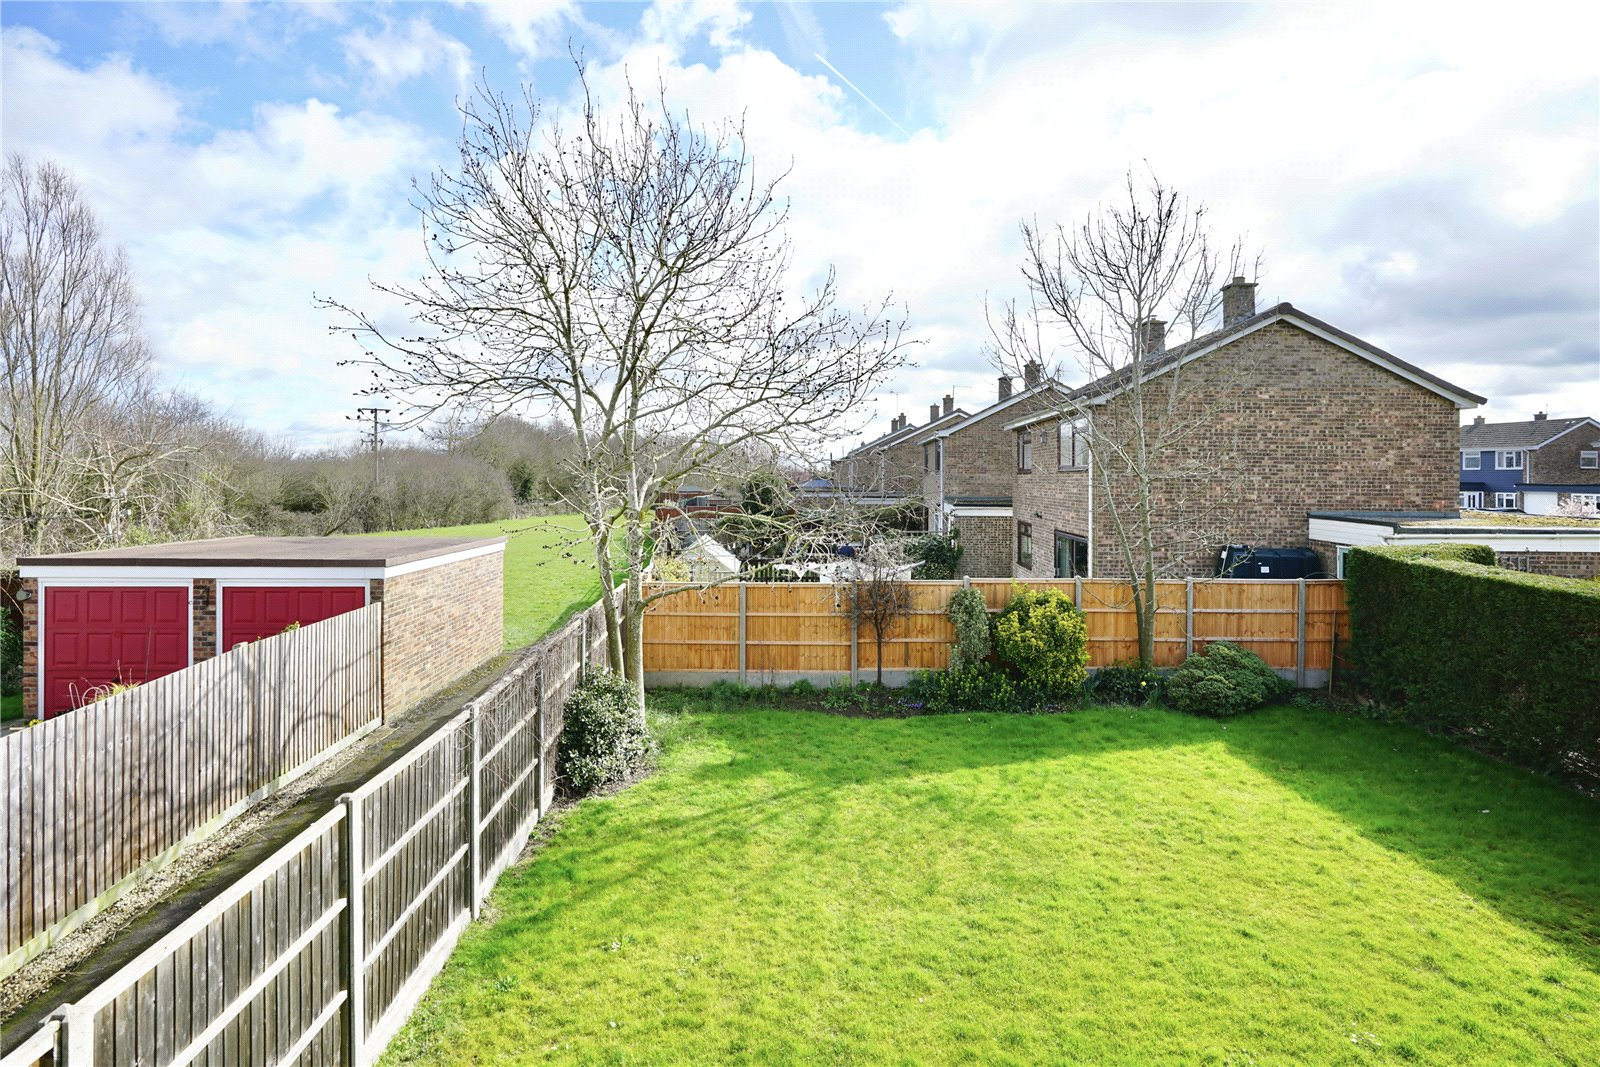 4 bed house for sale in Manor Close, Great Staughton 12